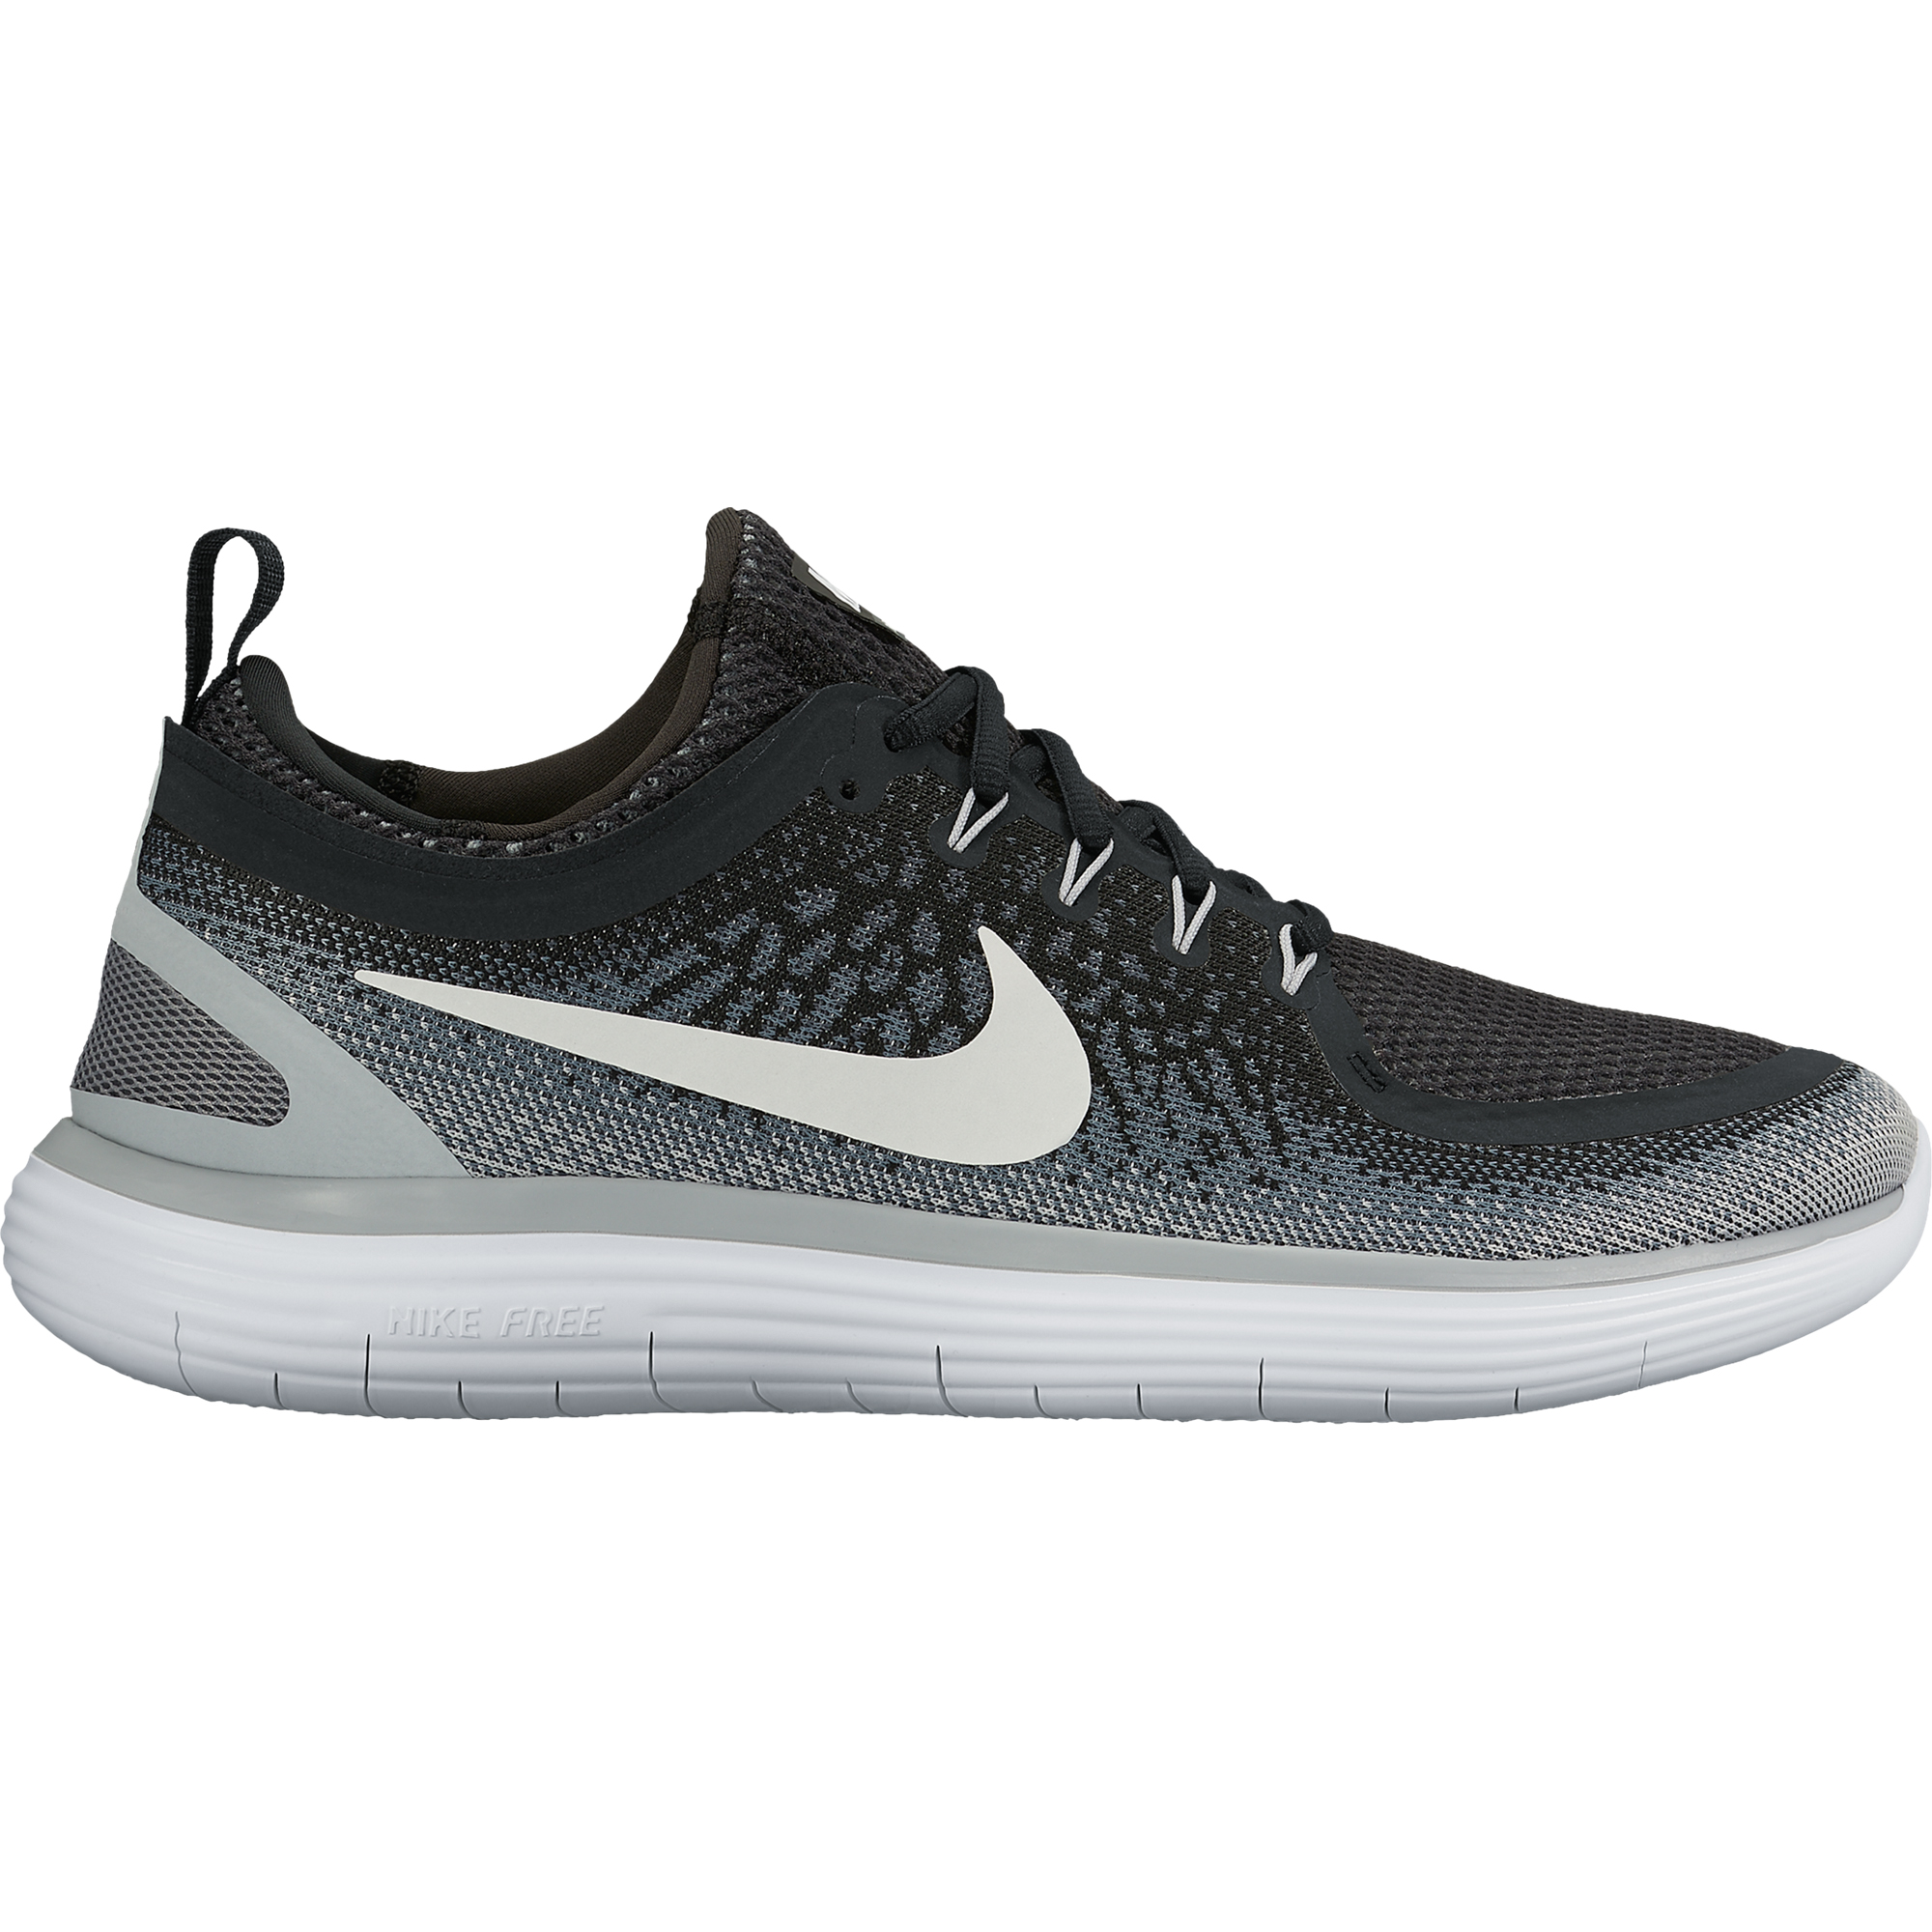 best service 614ce 5dc1a Nike Free Run Distance 2 Road Running Shoes - Men's